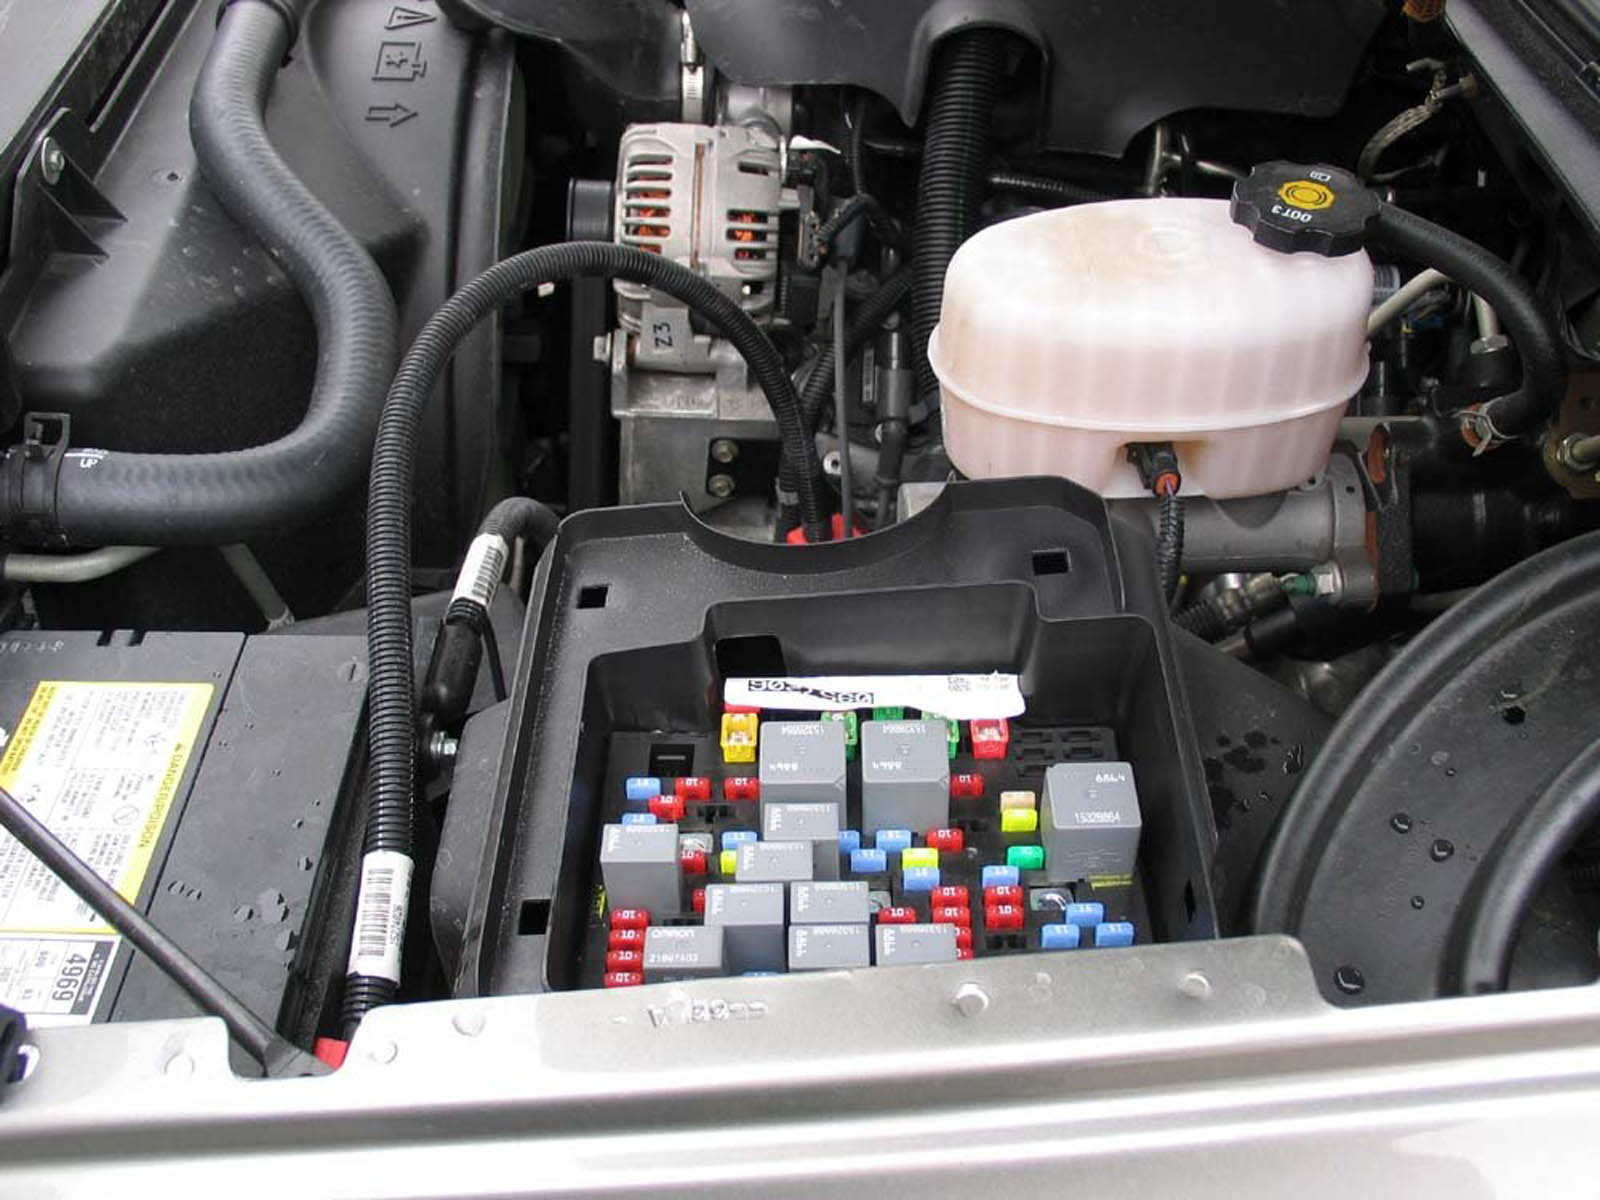 MMMay 27 Fuse Box 04 69845 chevrolet silverado gmt800 1999 2006 fuse box diagram chevroletforum Chevy Traverse Fuse Box Location at eliteediting.co